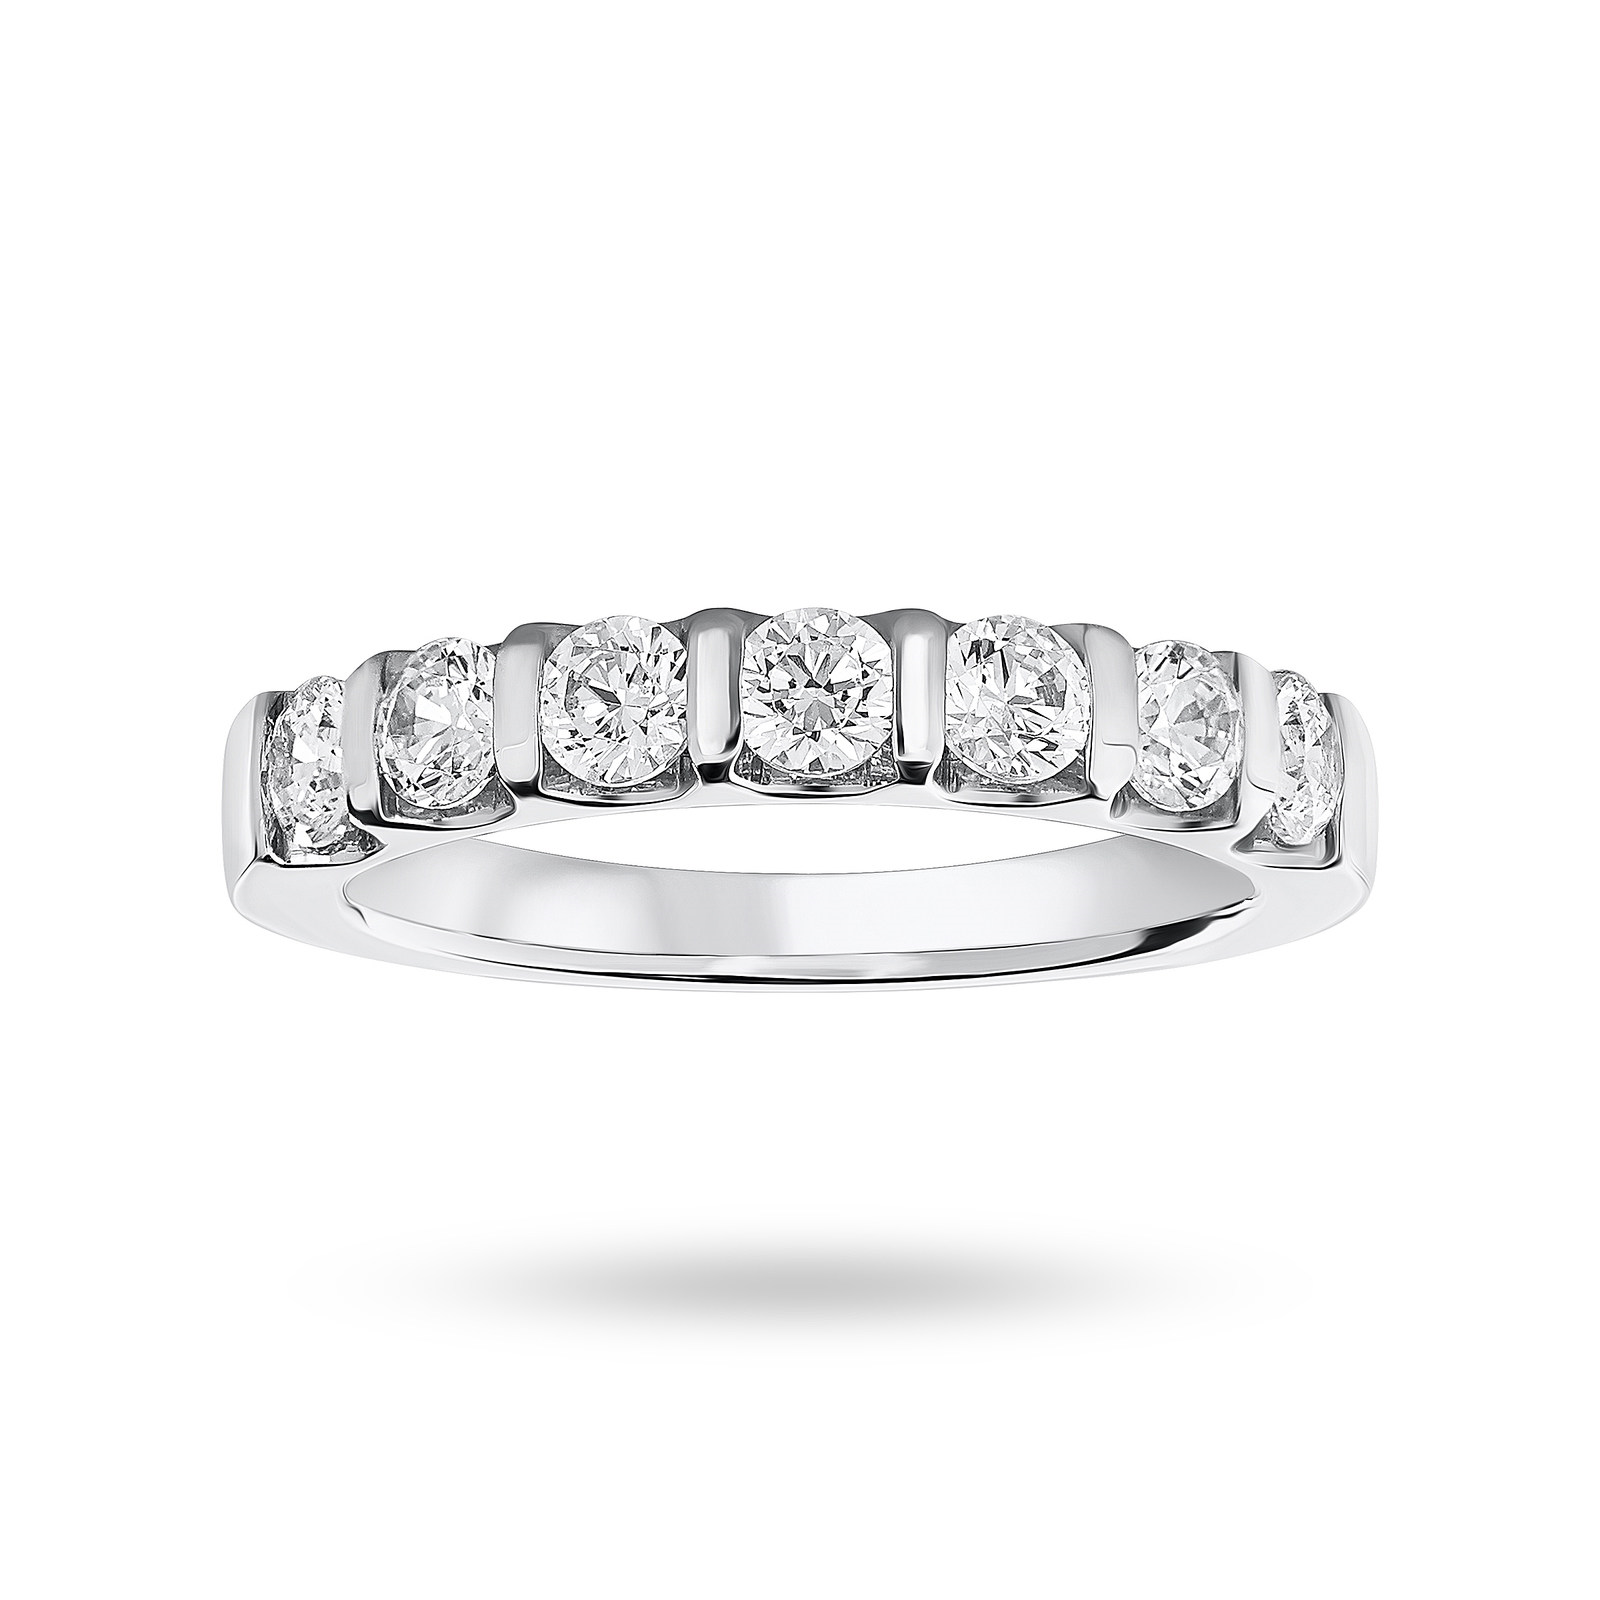 18ct White Gold 0.77ct Brilliant Cut Half Eternity Ring - Ring Size J